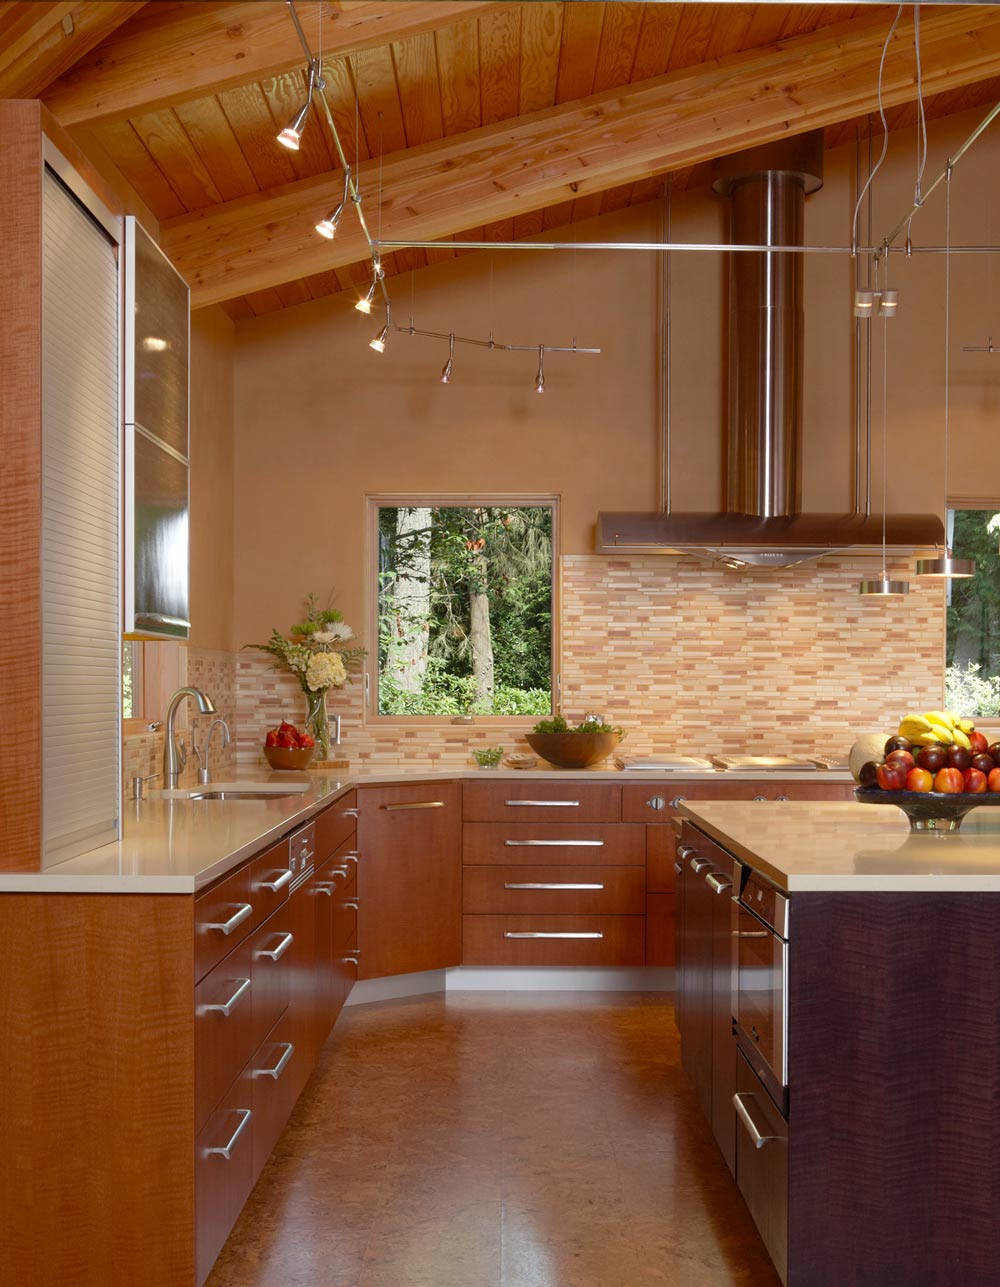 Wshg Tile Basics Selecting The Right Tile For You And Your